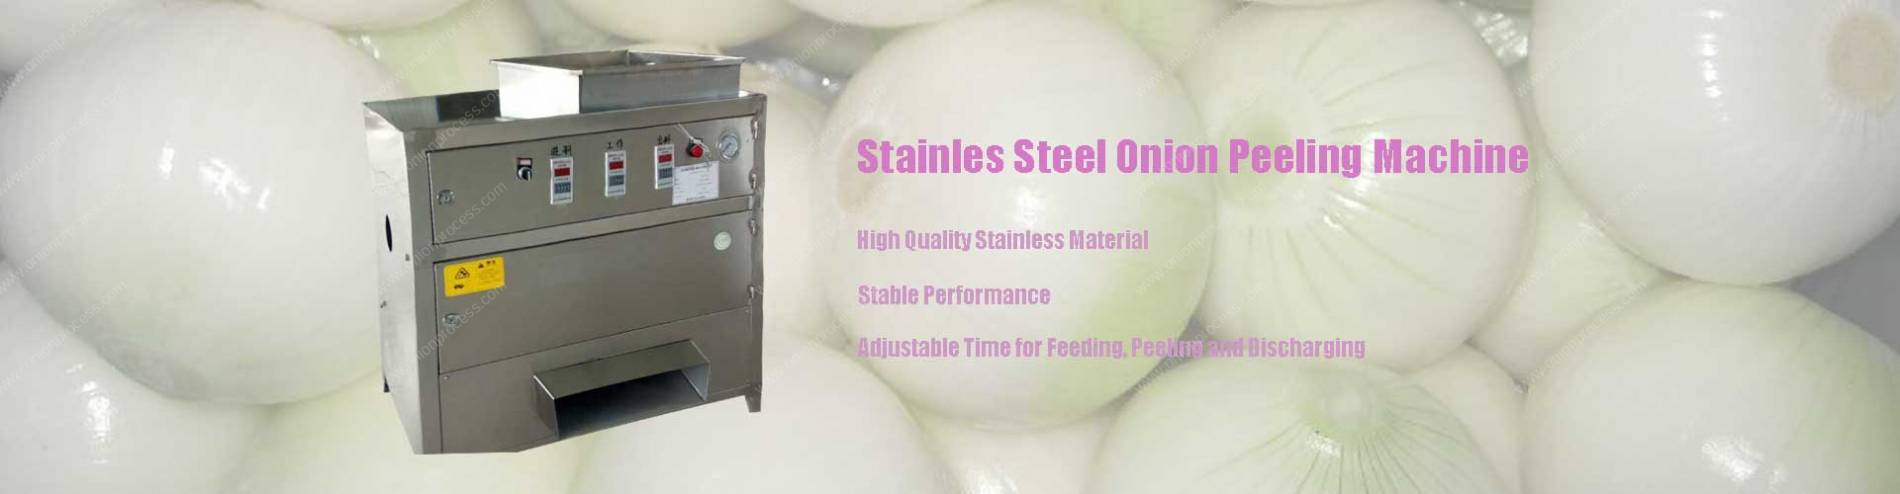 small-stainless-steel-onion-peeling-machine